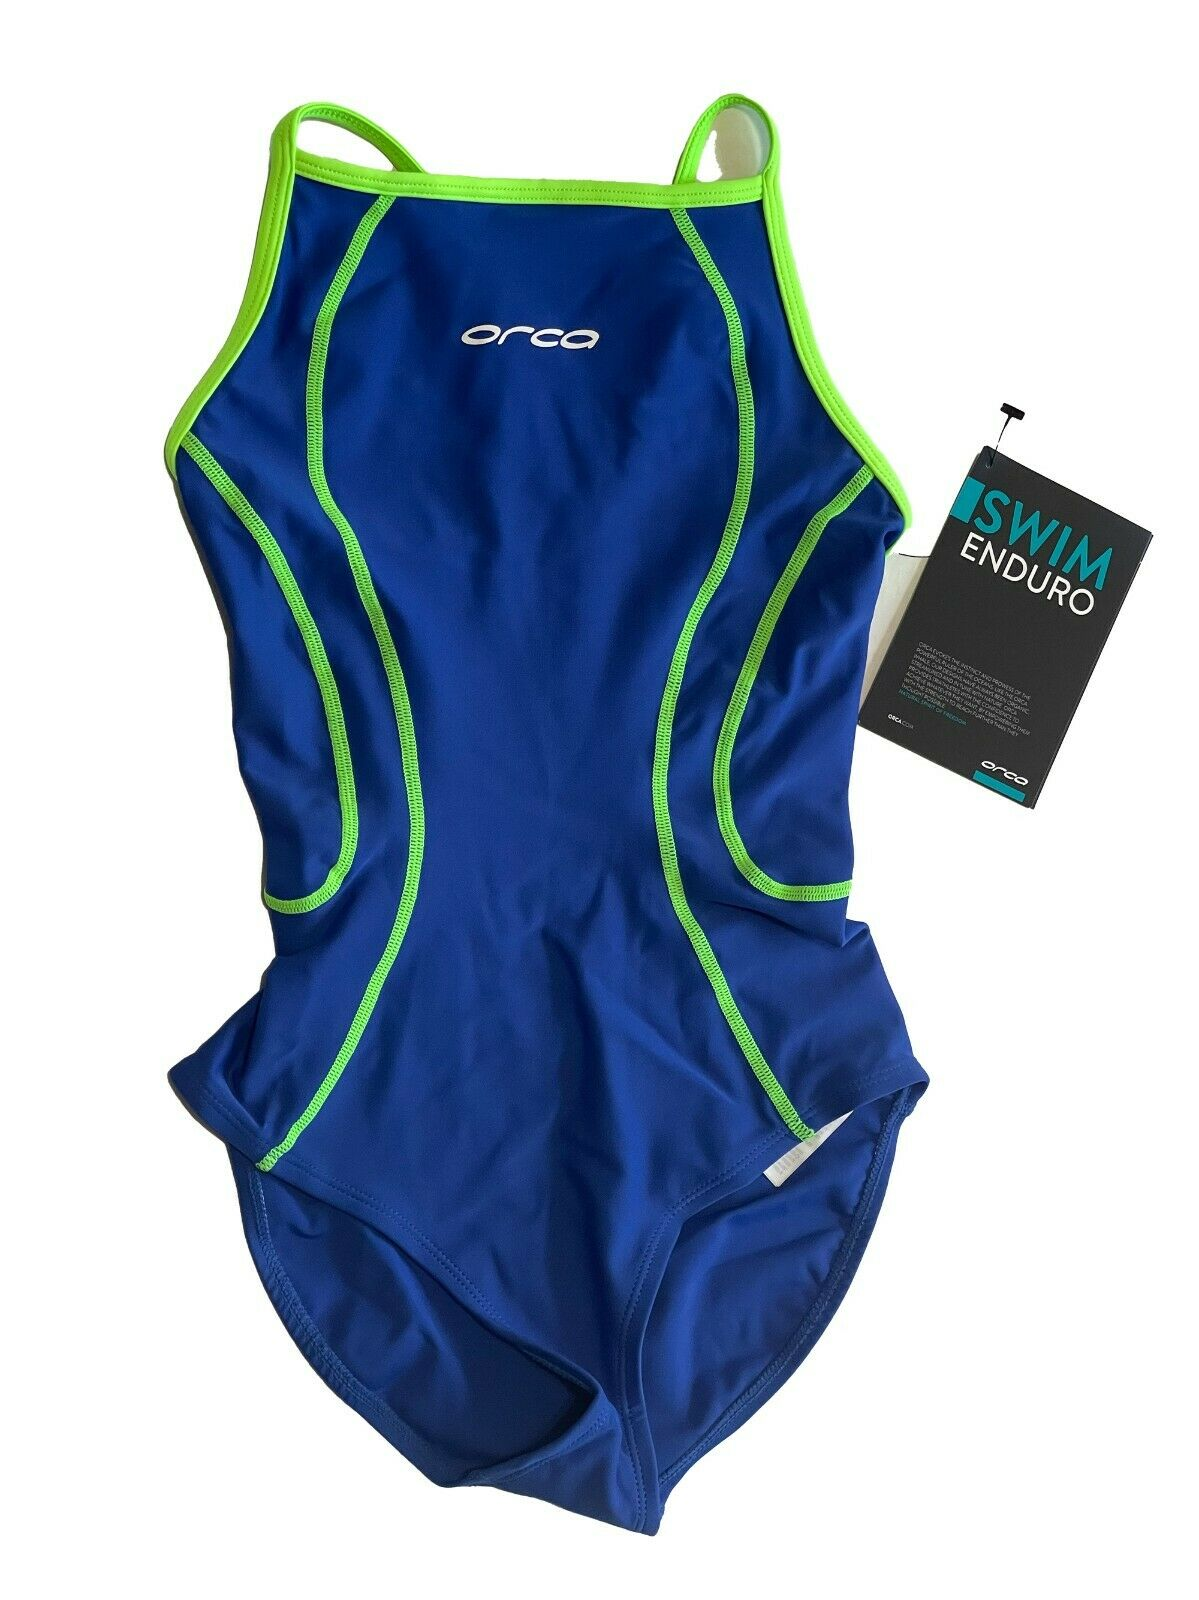 Orca Womens XS 8 String Back Swimsuit Enduro One Piece Blue Green UPF 50